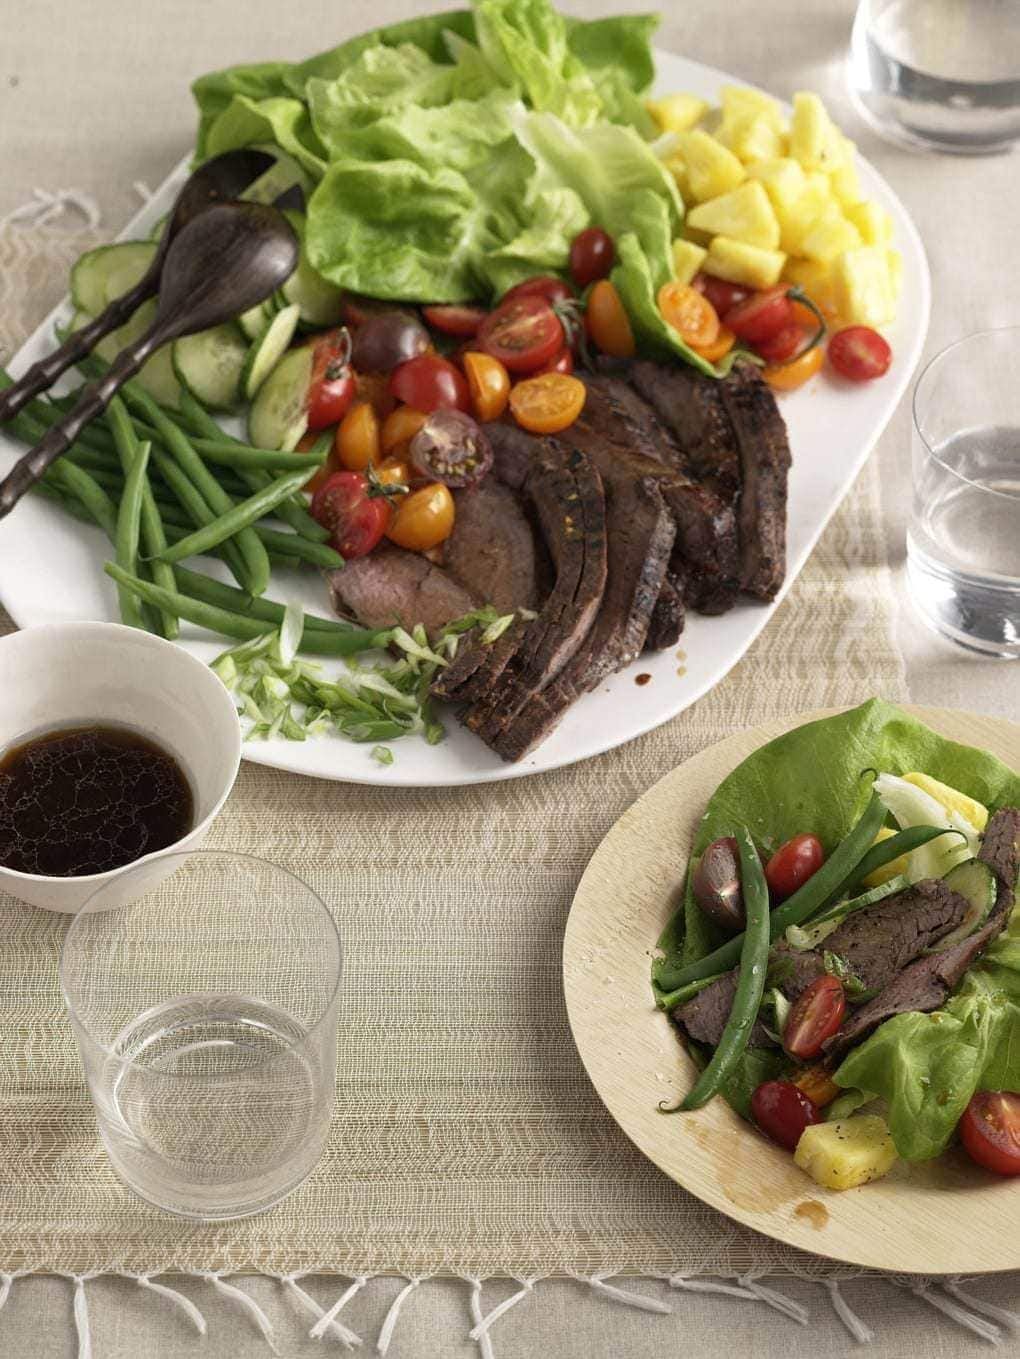 Marinated Thai Beef Salad gets a burst of flavor from authentic Thai flavors, sweet fruit and crunchy veggies. A summer dinner everyone will love.